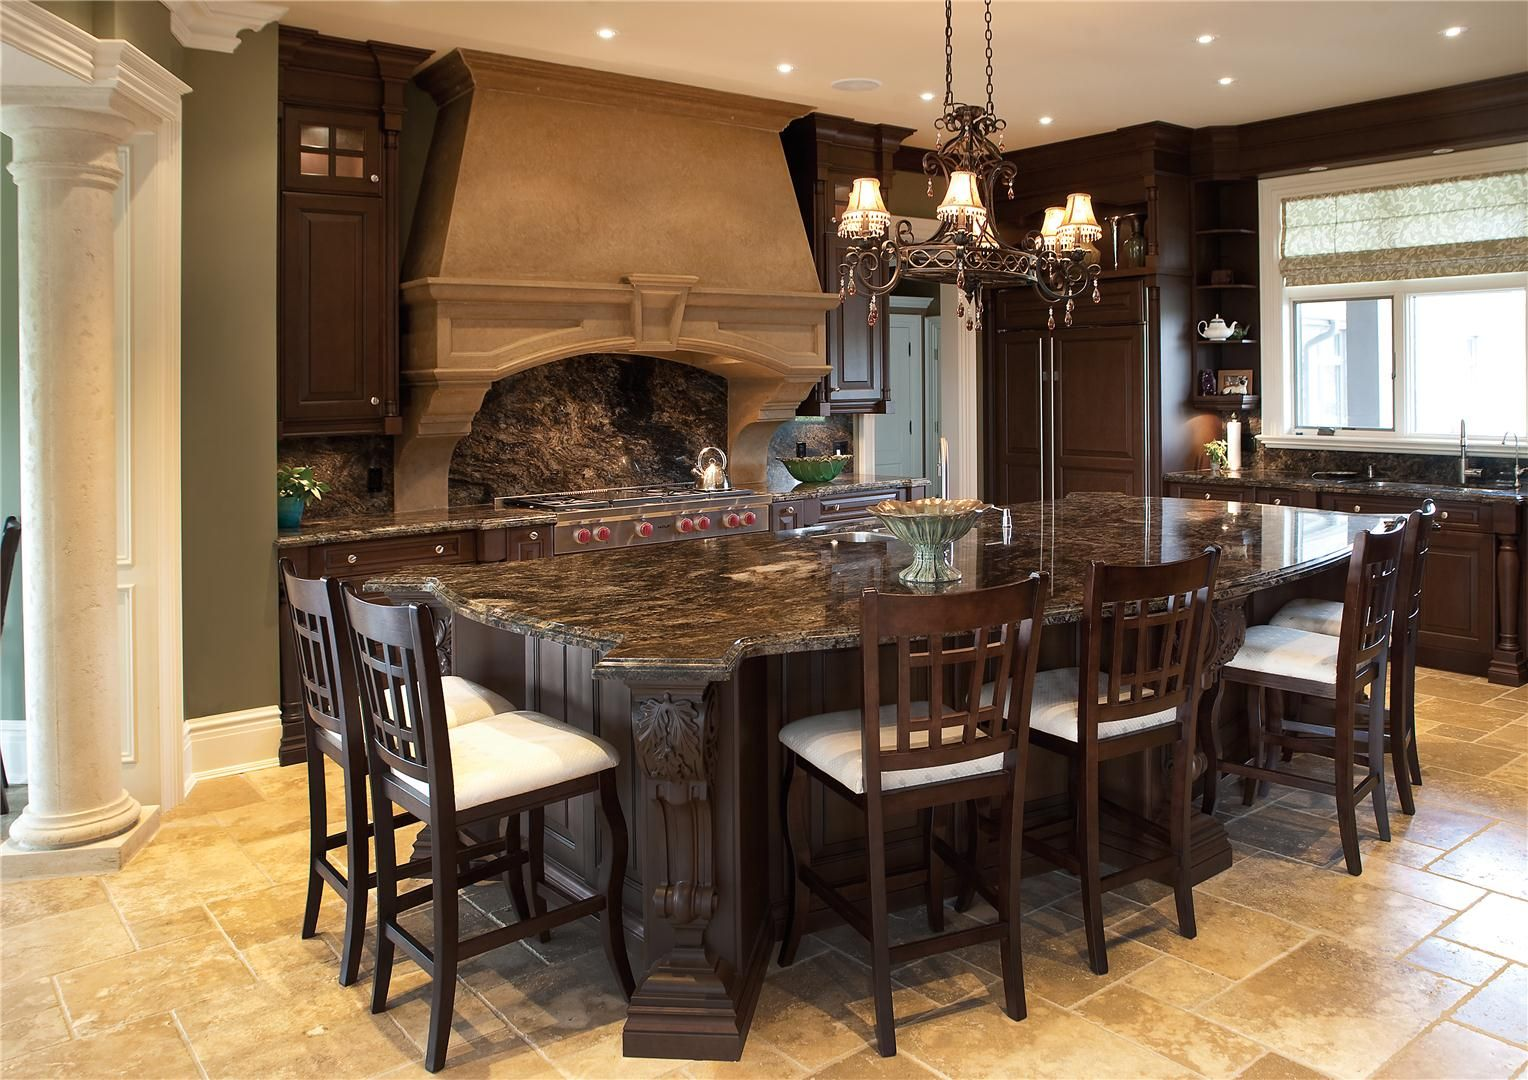 Kitchen Fireplace For Cooking Ovens